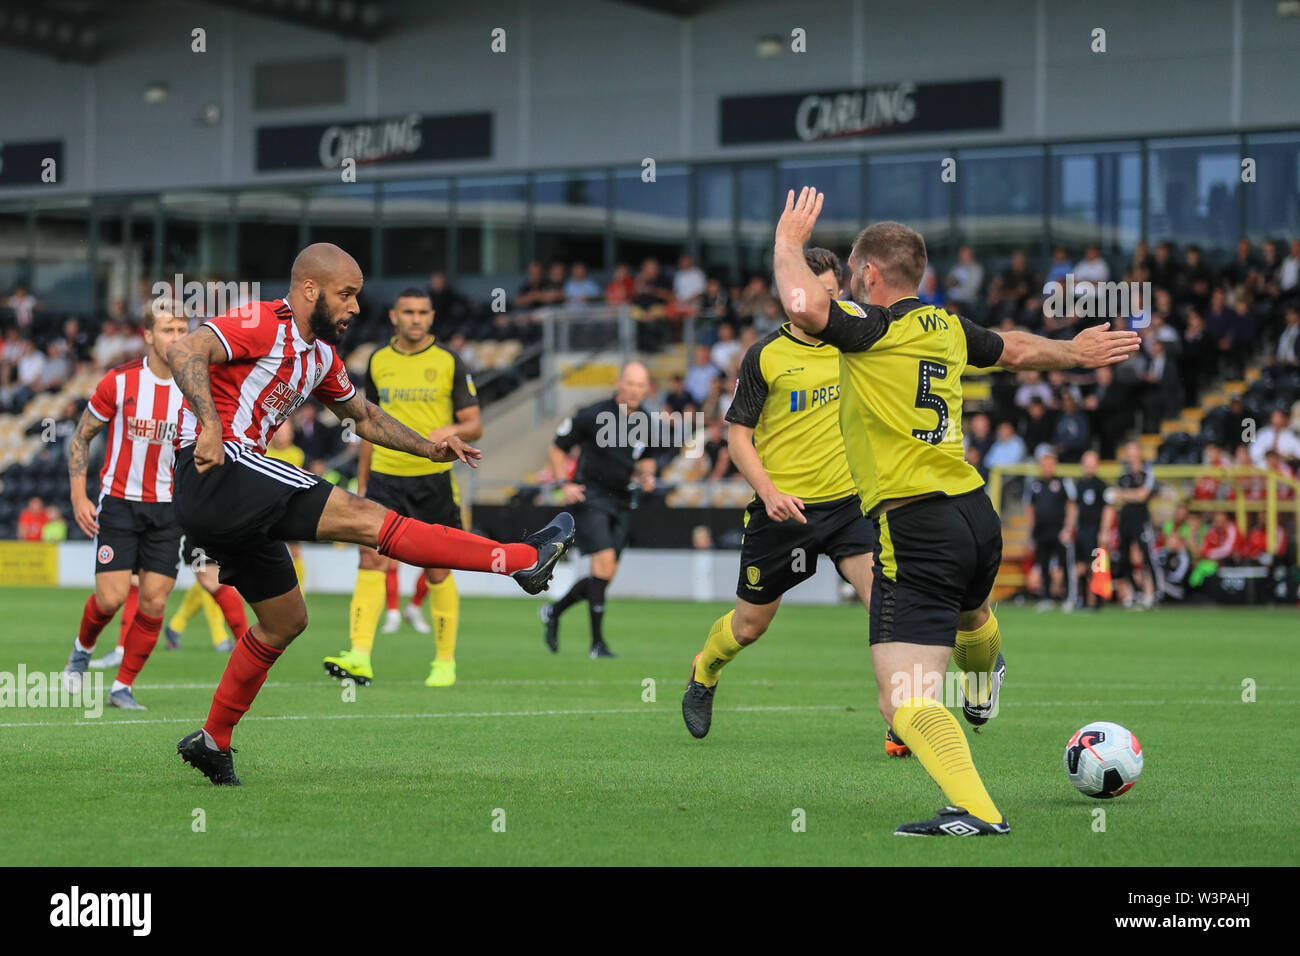 16th July 2019, Pirelli Stadium, Burton upon Trent, England; Pre-Season friendly, Burton Albion vs Sheffield United : David McGoldrick of Sheffield United shoots on goal and it hits the post and goes wide  Credit: Mark Cosgrove/News Images  English Football League images are subject to DataCo Licence - Stock Image